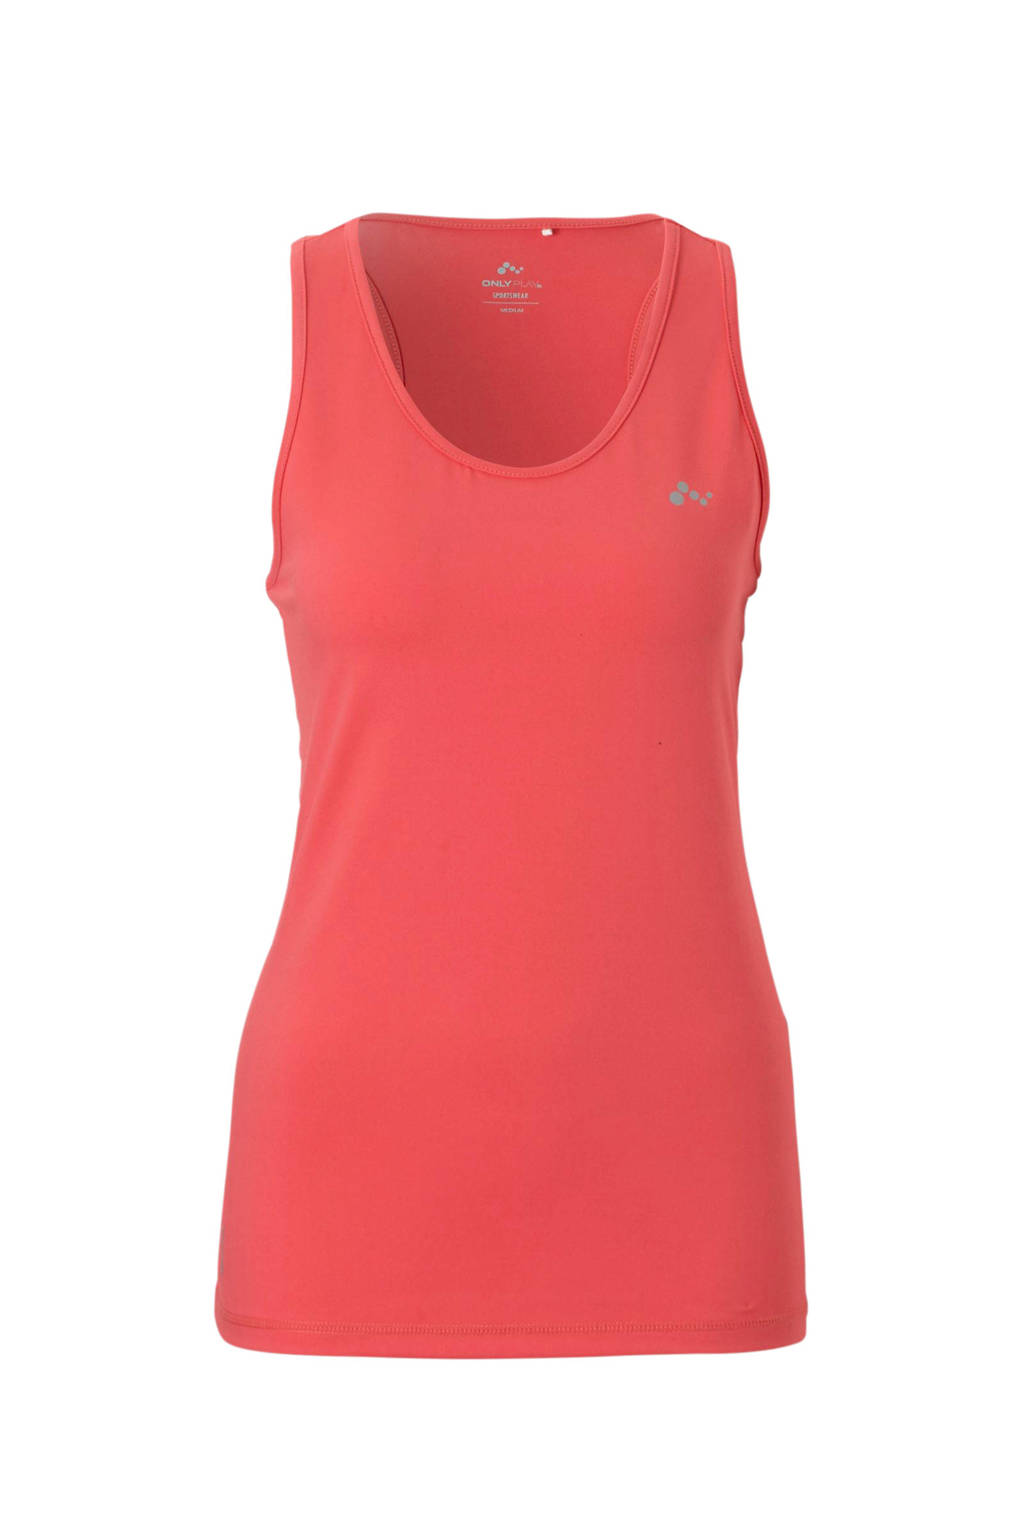 ONLY PLAY sporttop roze, Neon roze